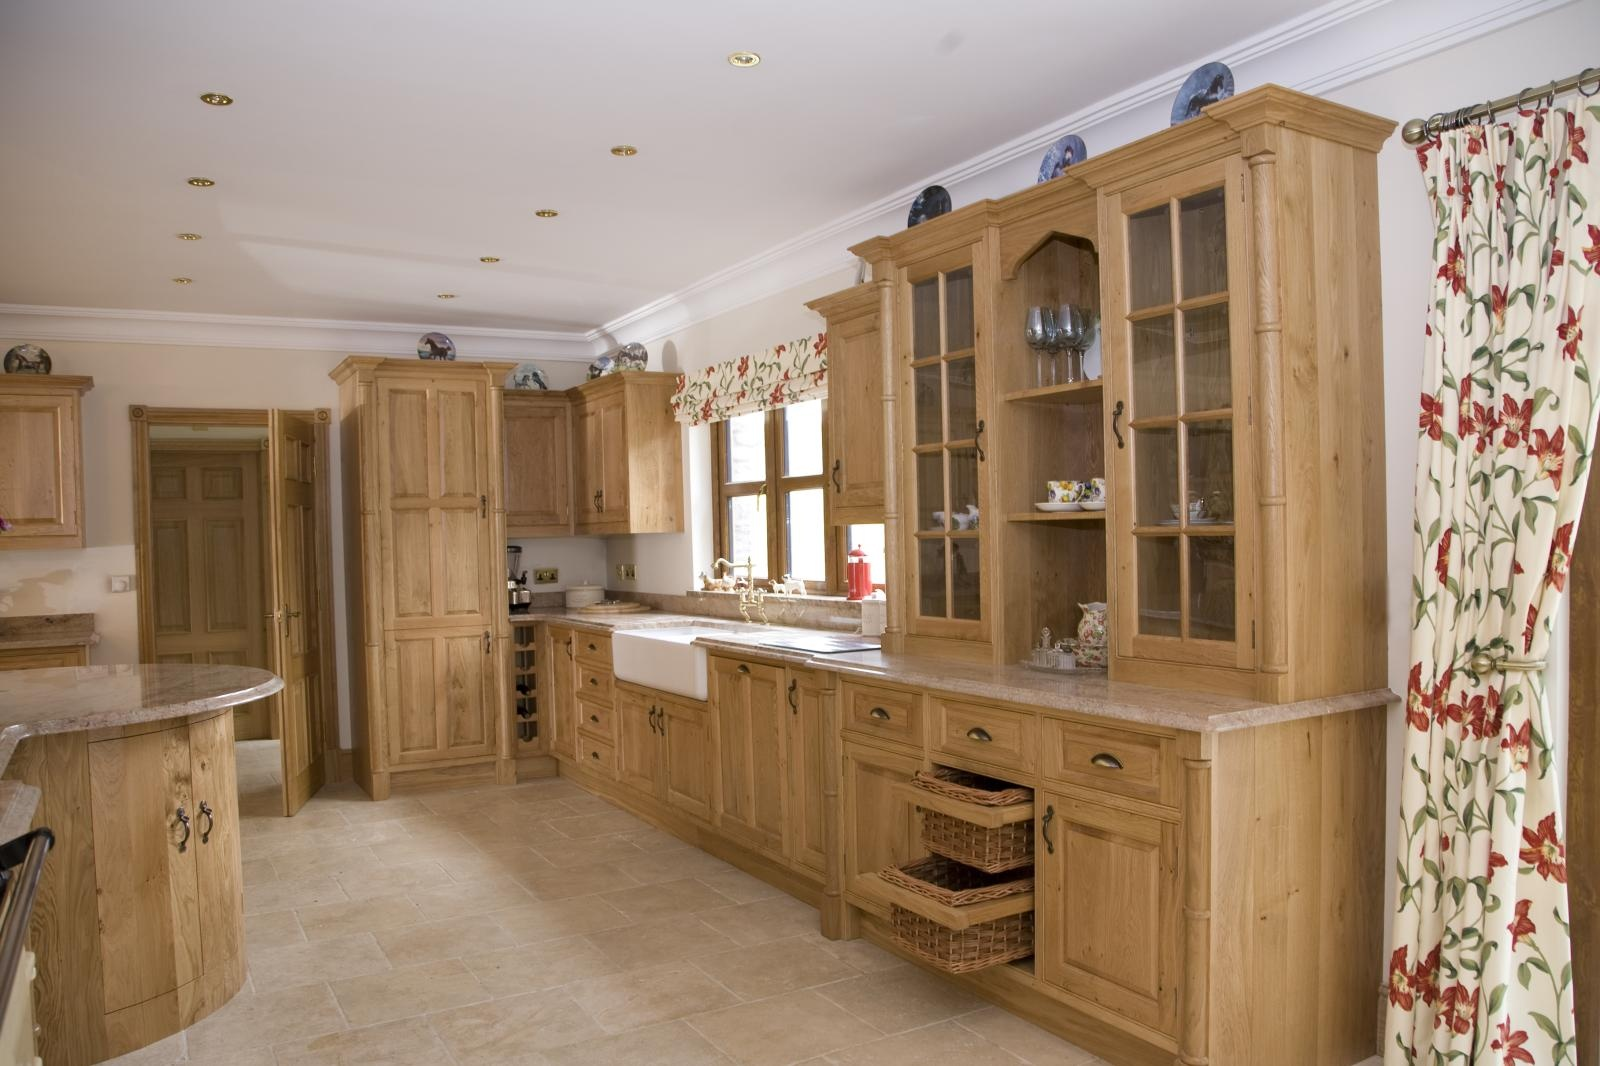 Welsh Kitchens